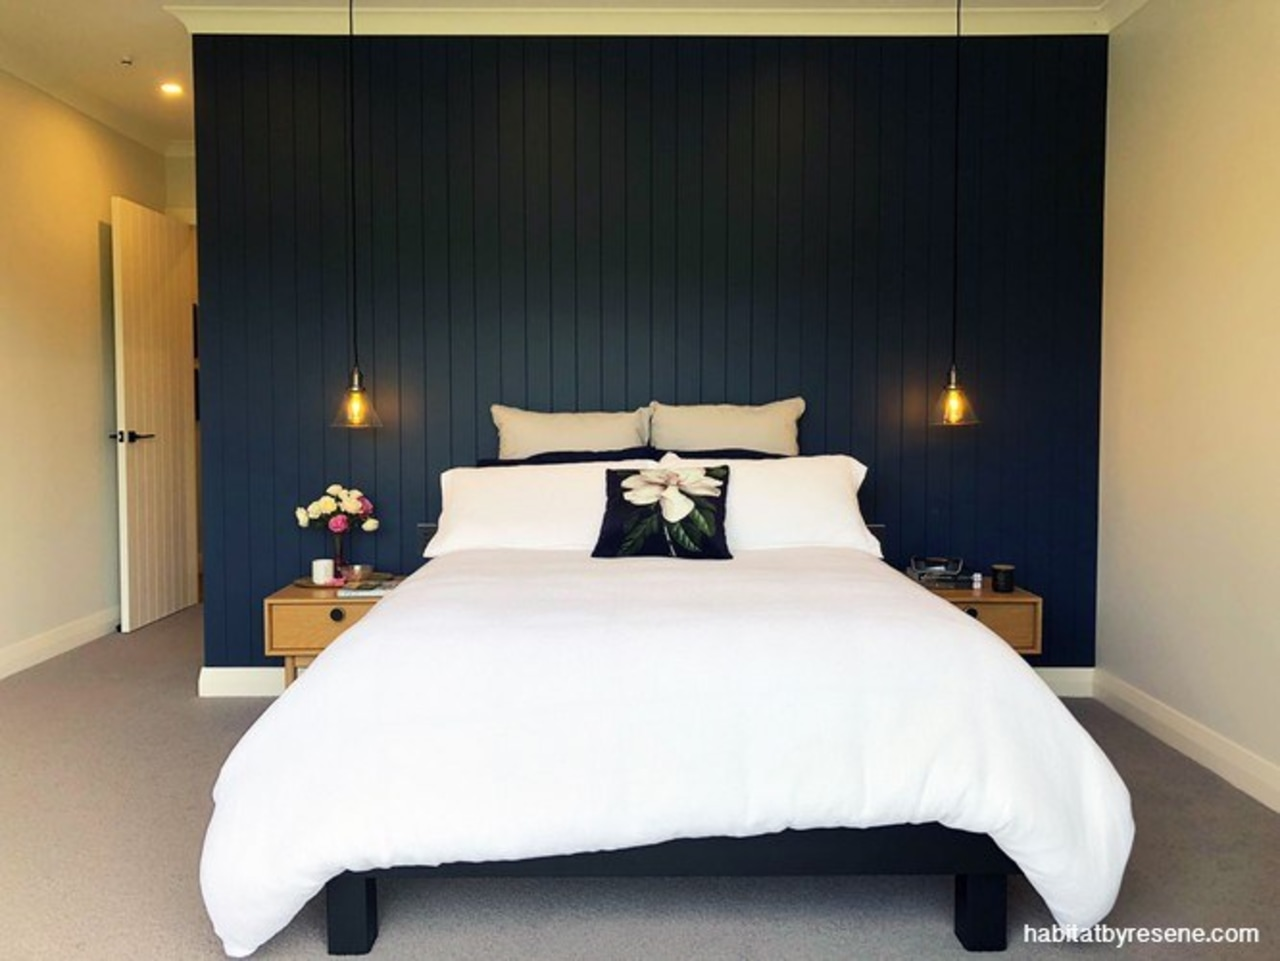 Gemma chose Resene Dark Side for the feature bed, bed frame, bed sheet, bedding, bedroom, boutique hotel, building, ceiling, comfort, design, duvet cover, floor, furniture, interior design, lighting, linens, mattress, mattress pad, property, real estate, room, suite, textile, wall, black, white